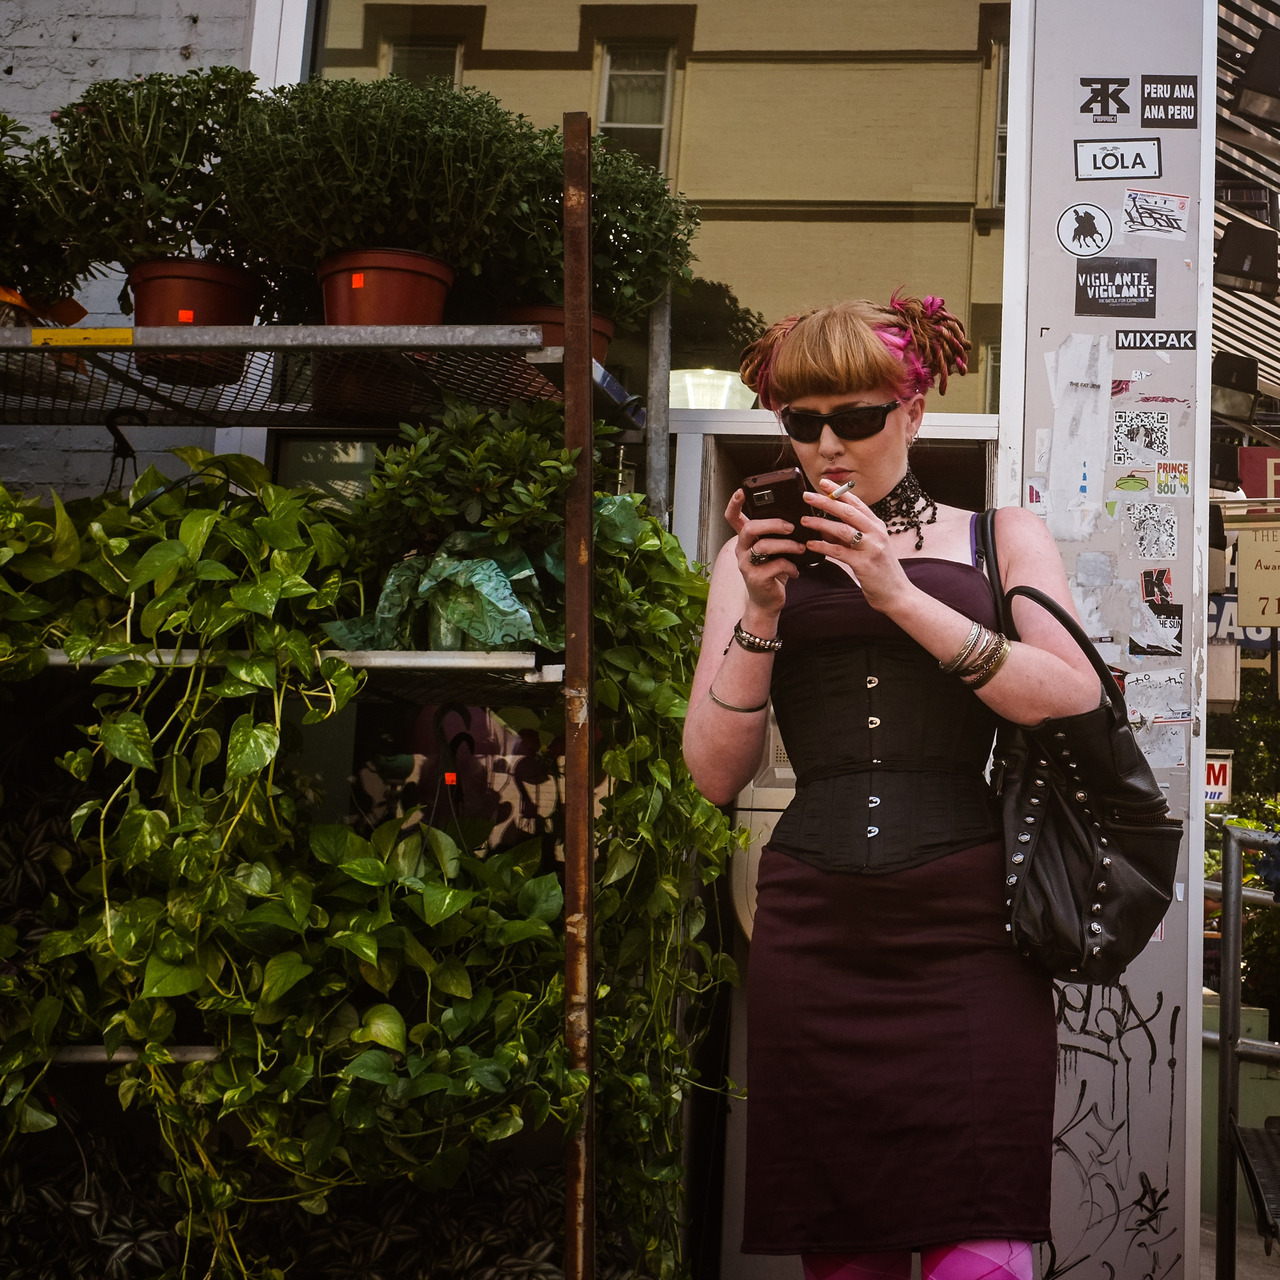 245 - Texting on Bedford   #366project #FujiX100